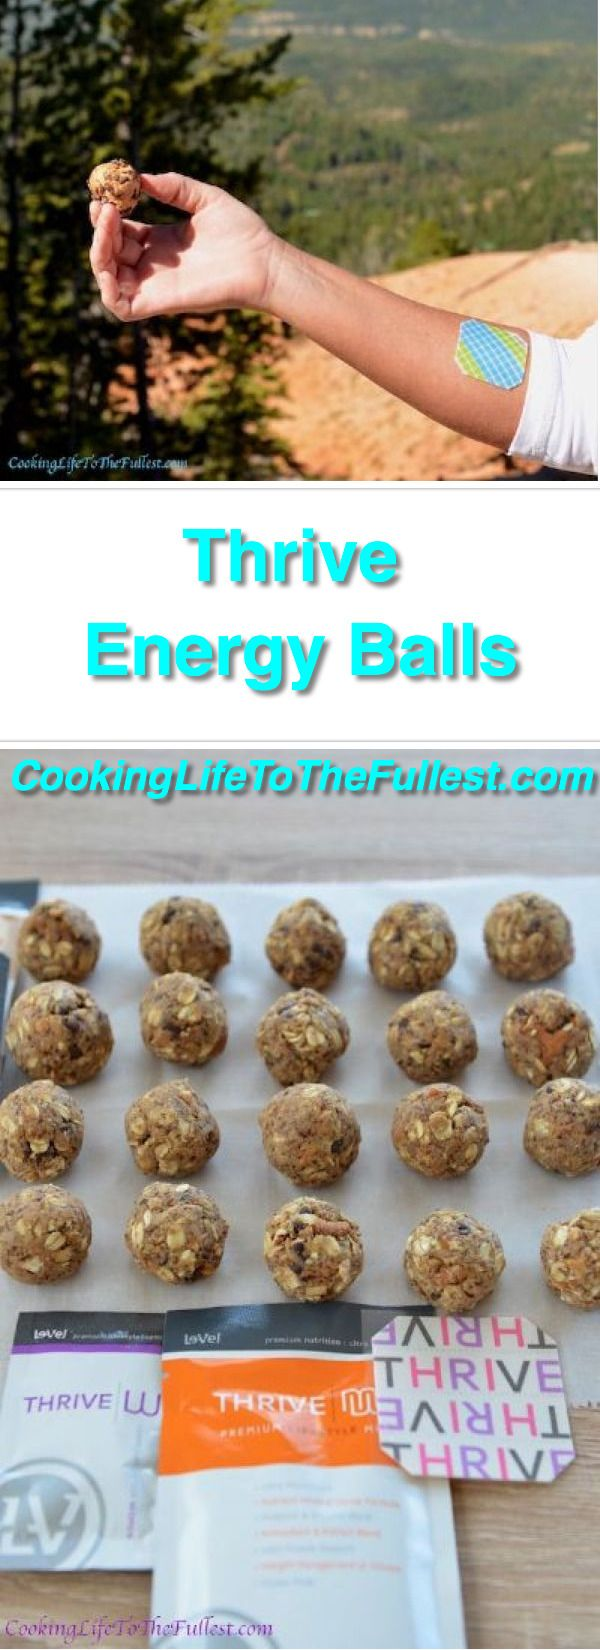 Thrive Energy Balls. The THRIVE Experience is an 8-week premium lifestyle plan…